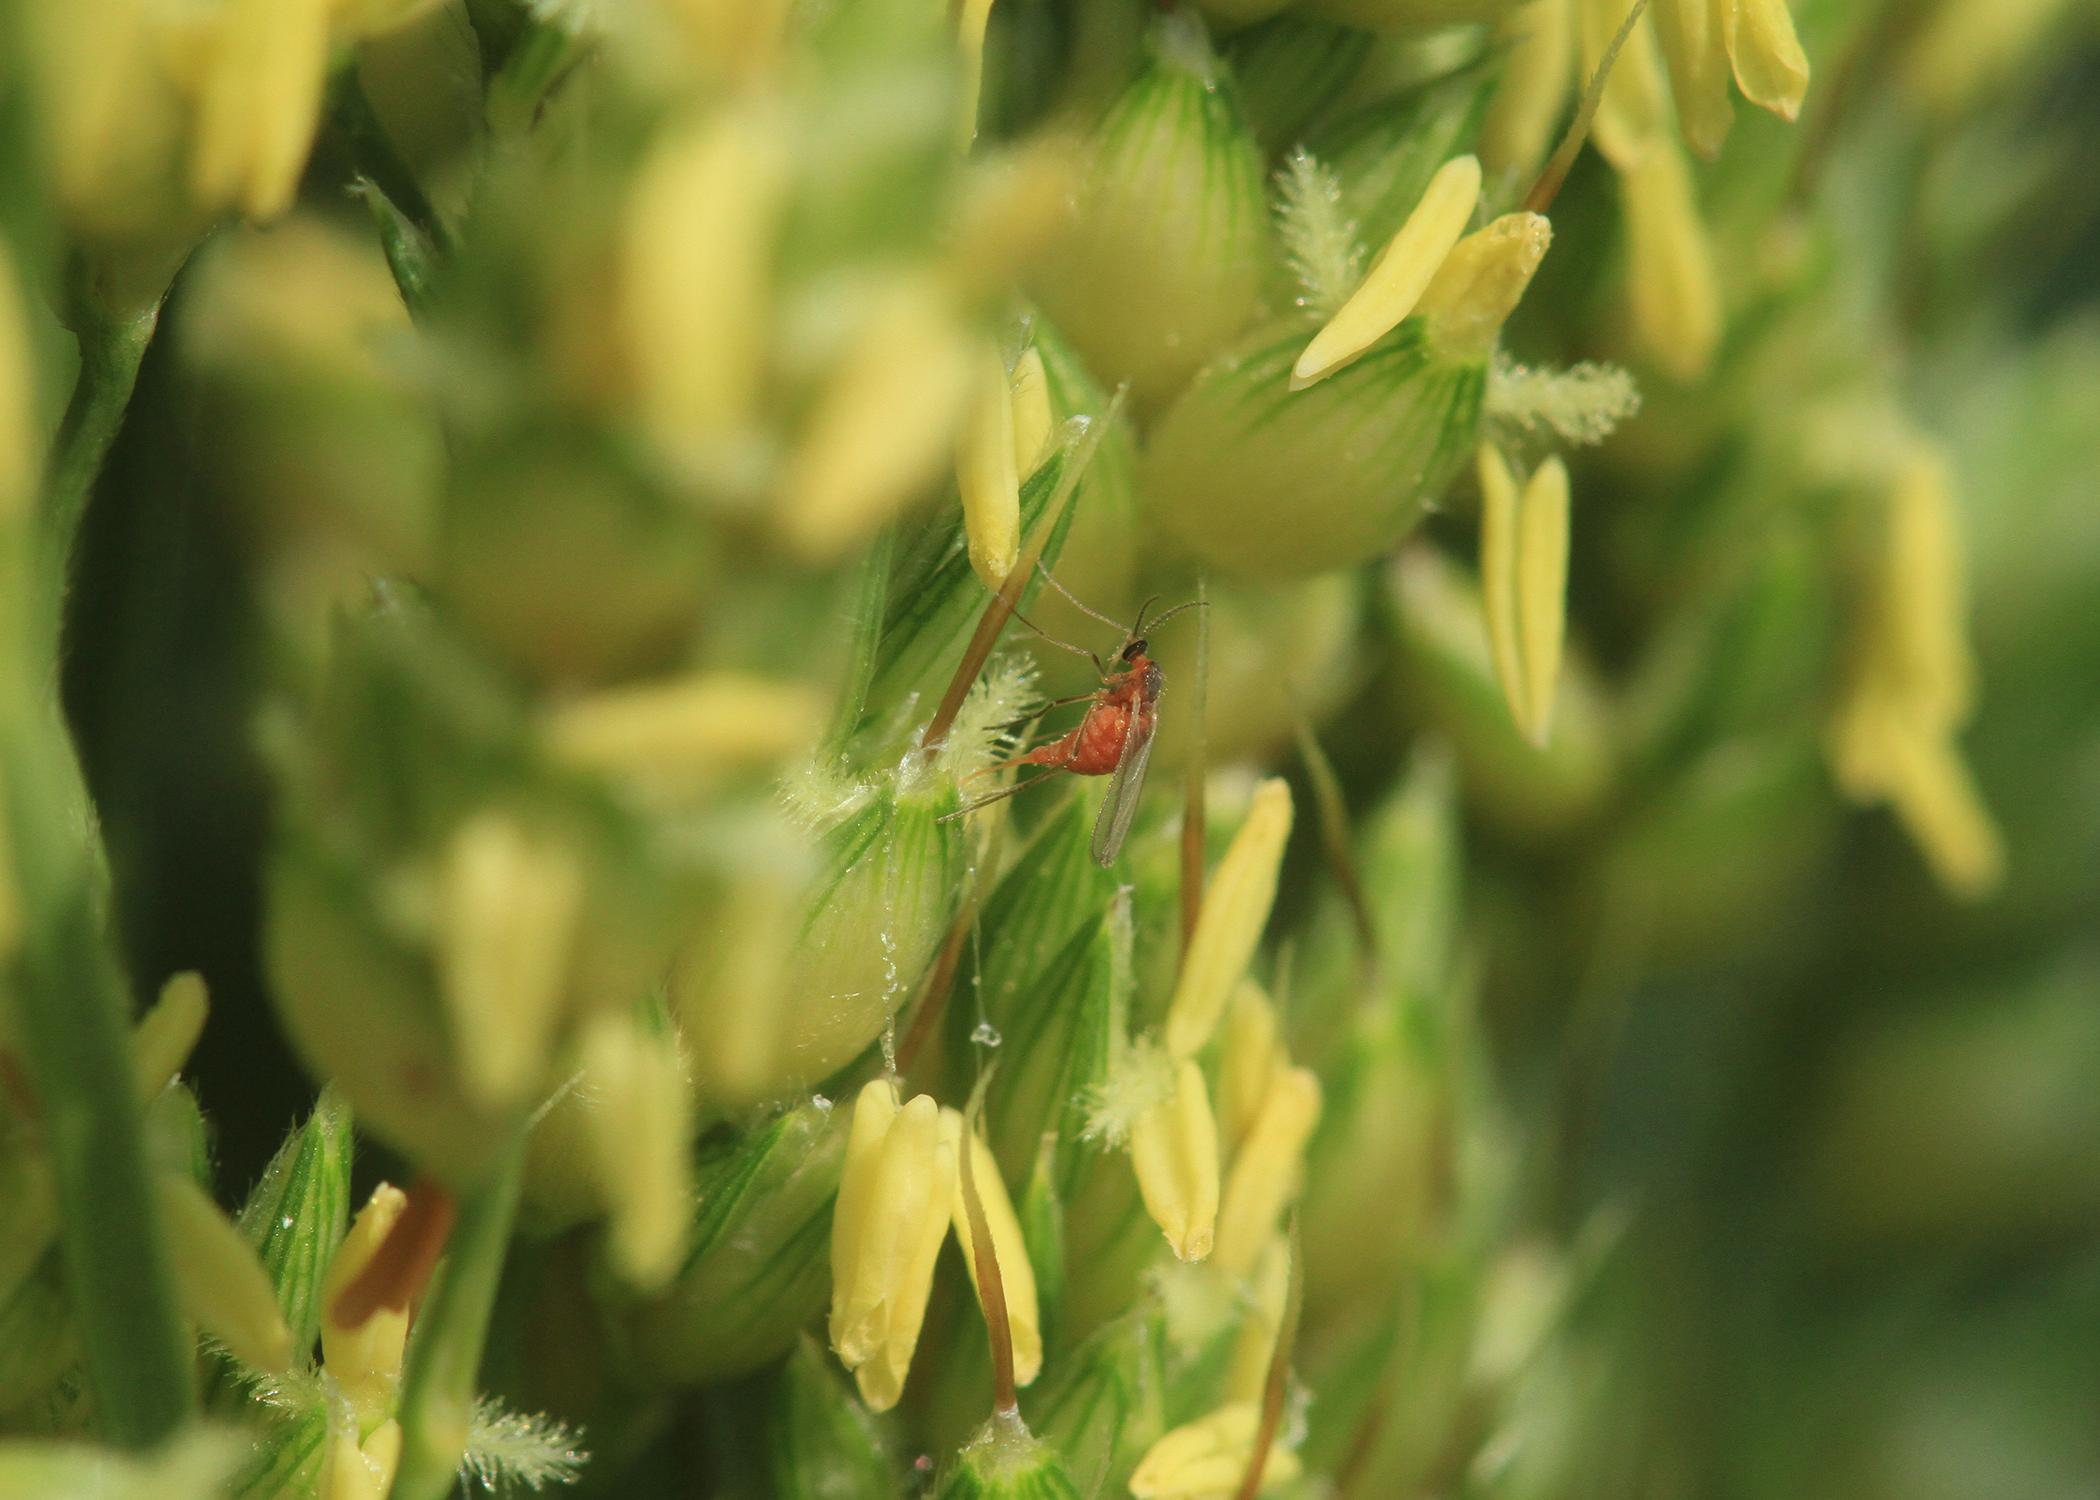 This year, producers planted about 90,000 acres of grain sorghum throughout the state. Early plantings have been affected more than usual by the sorghum midge, an insect that feeds on plants while they are in bloom. (Submitted photo)